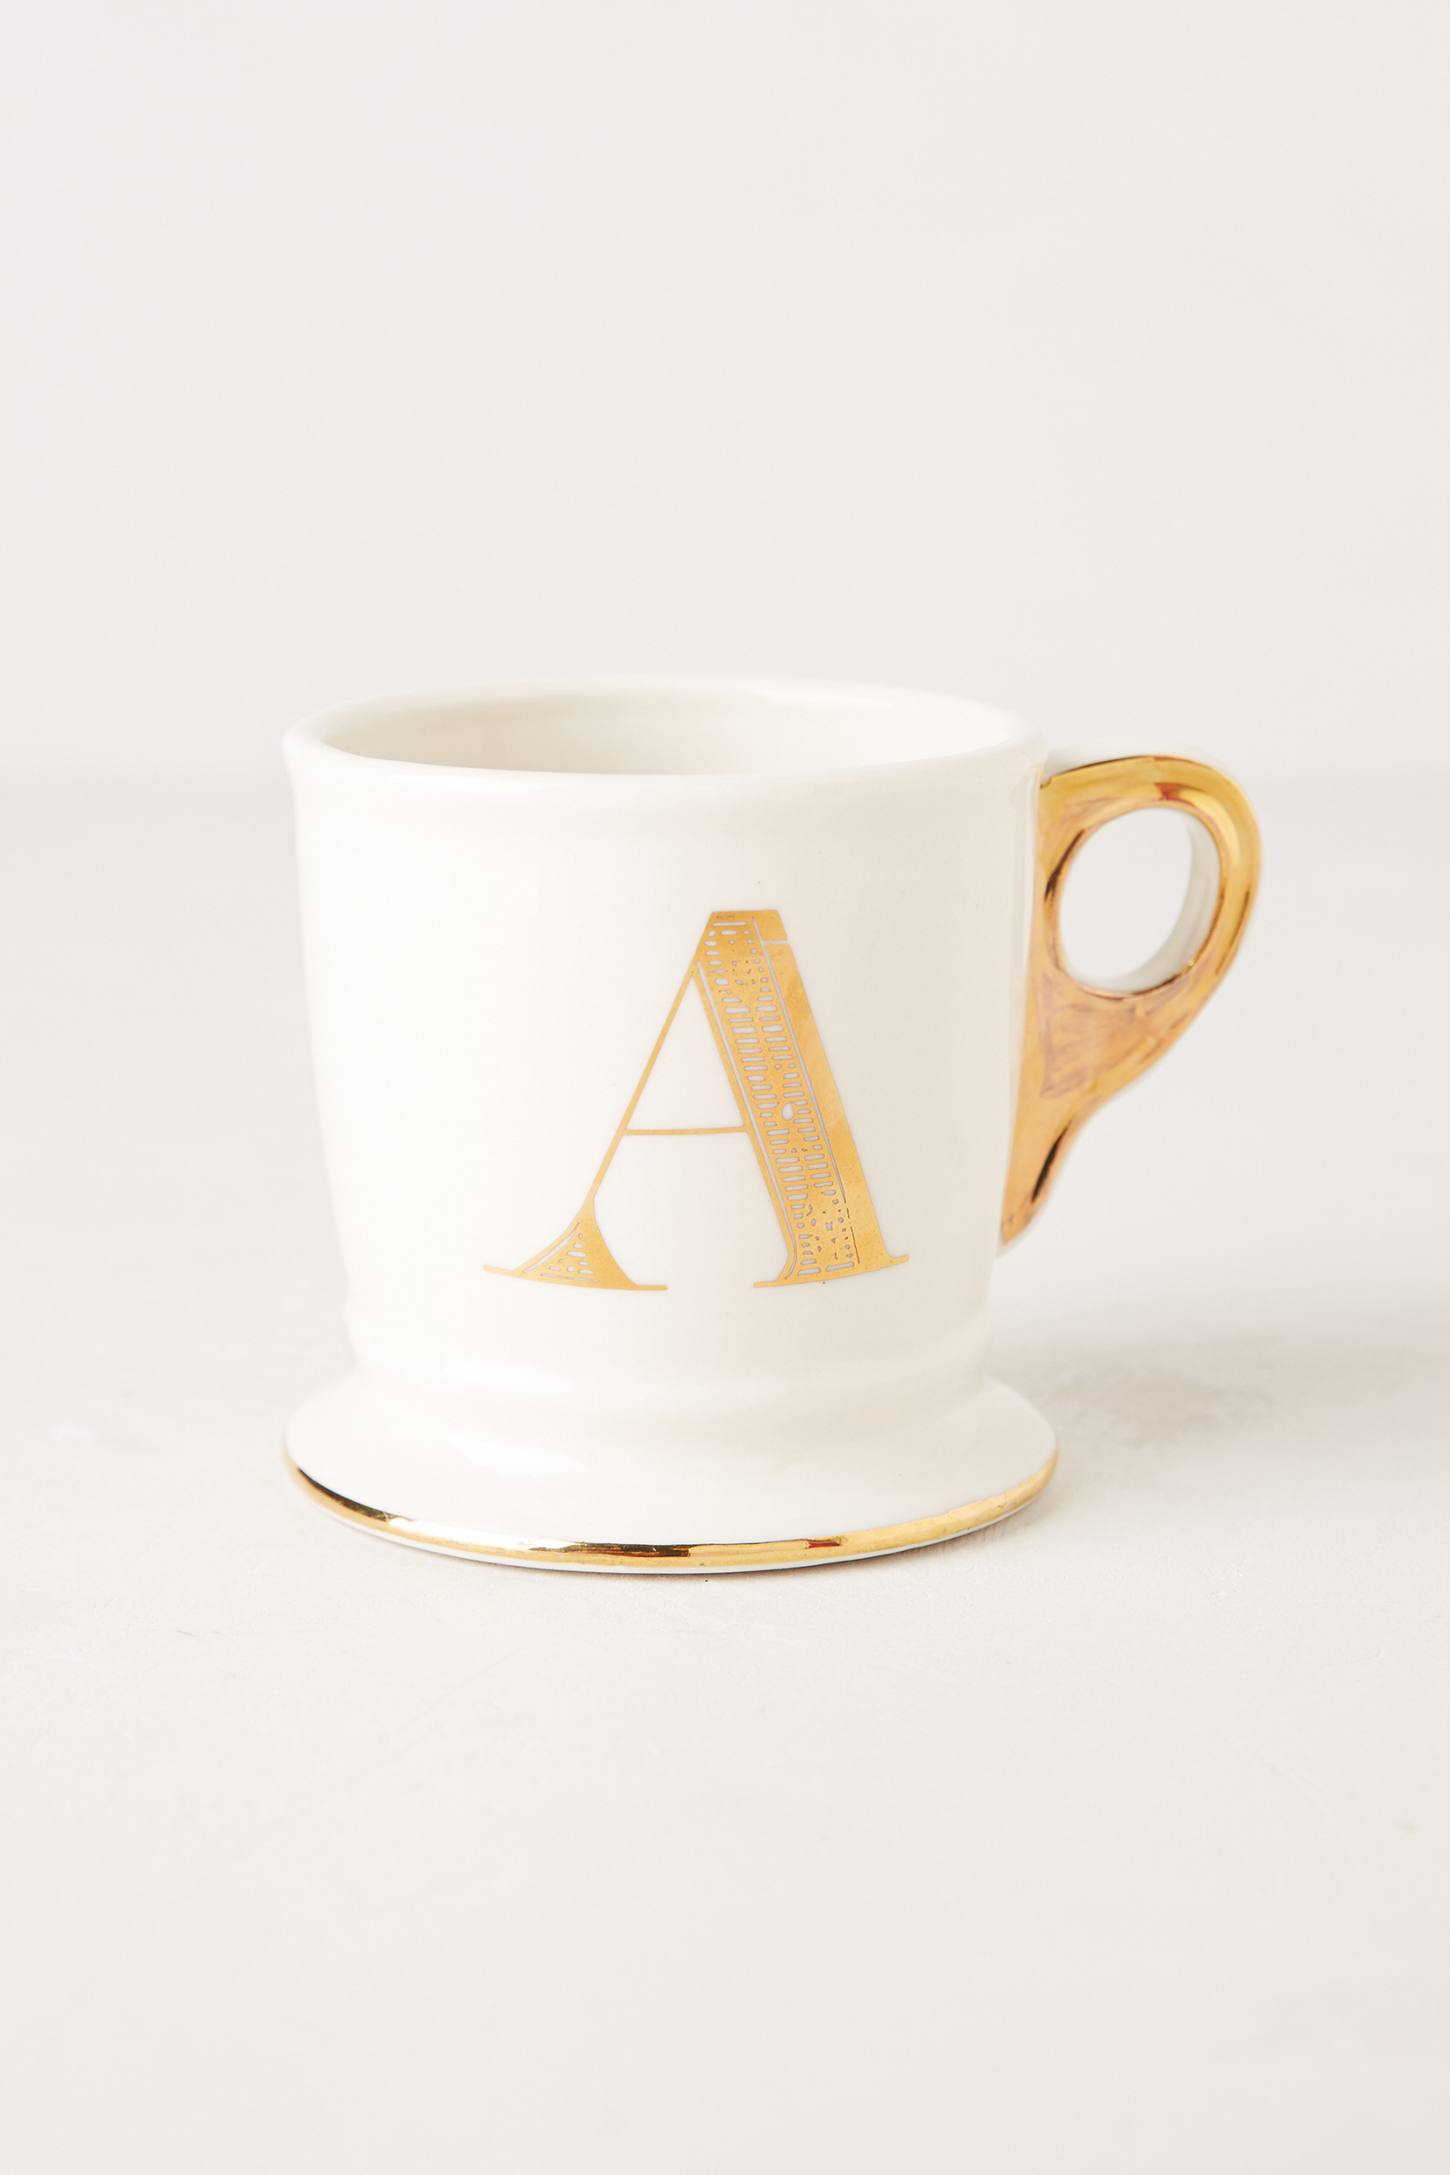 limited edition golden monogram mug anthropologie With gold letter mug